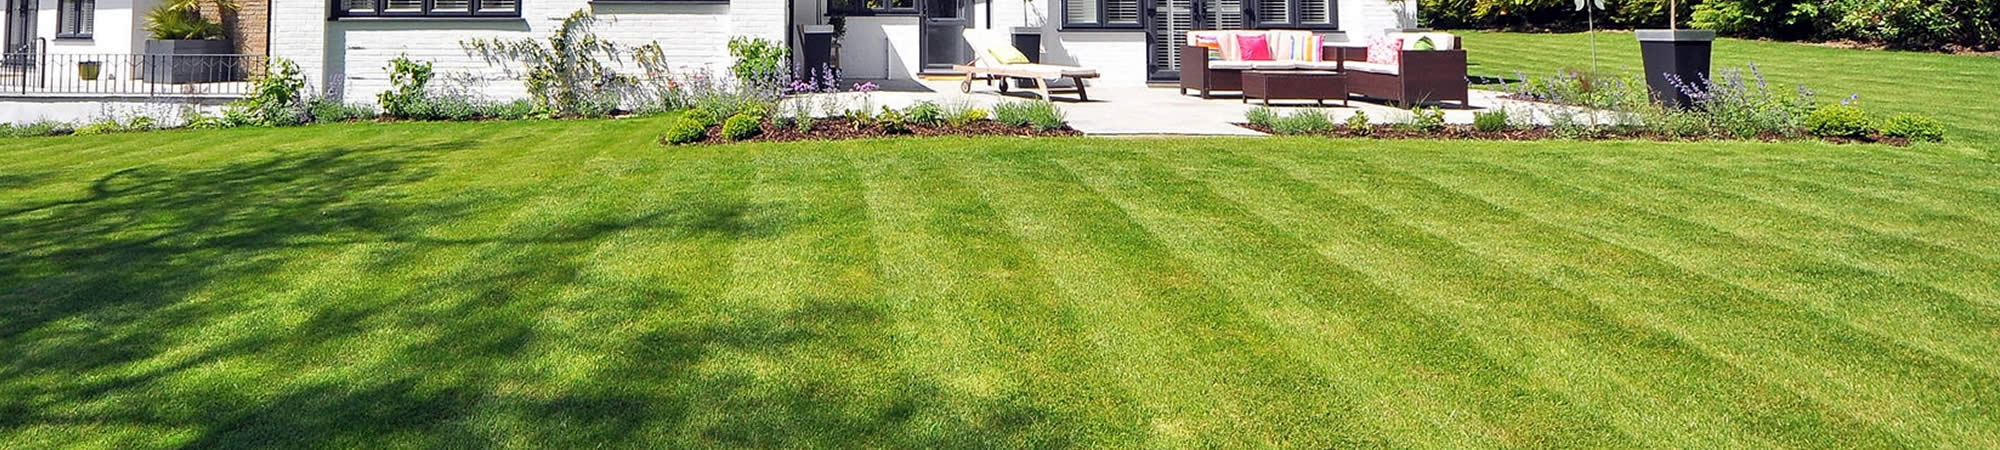 Find Lawn Maintenance Company near me